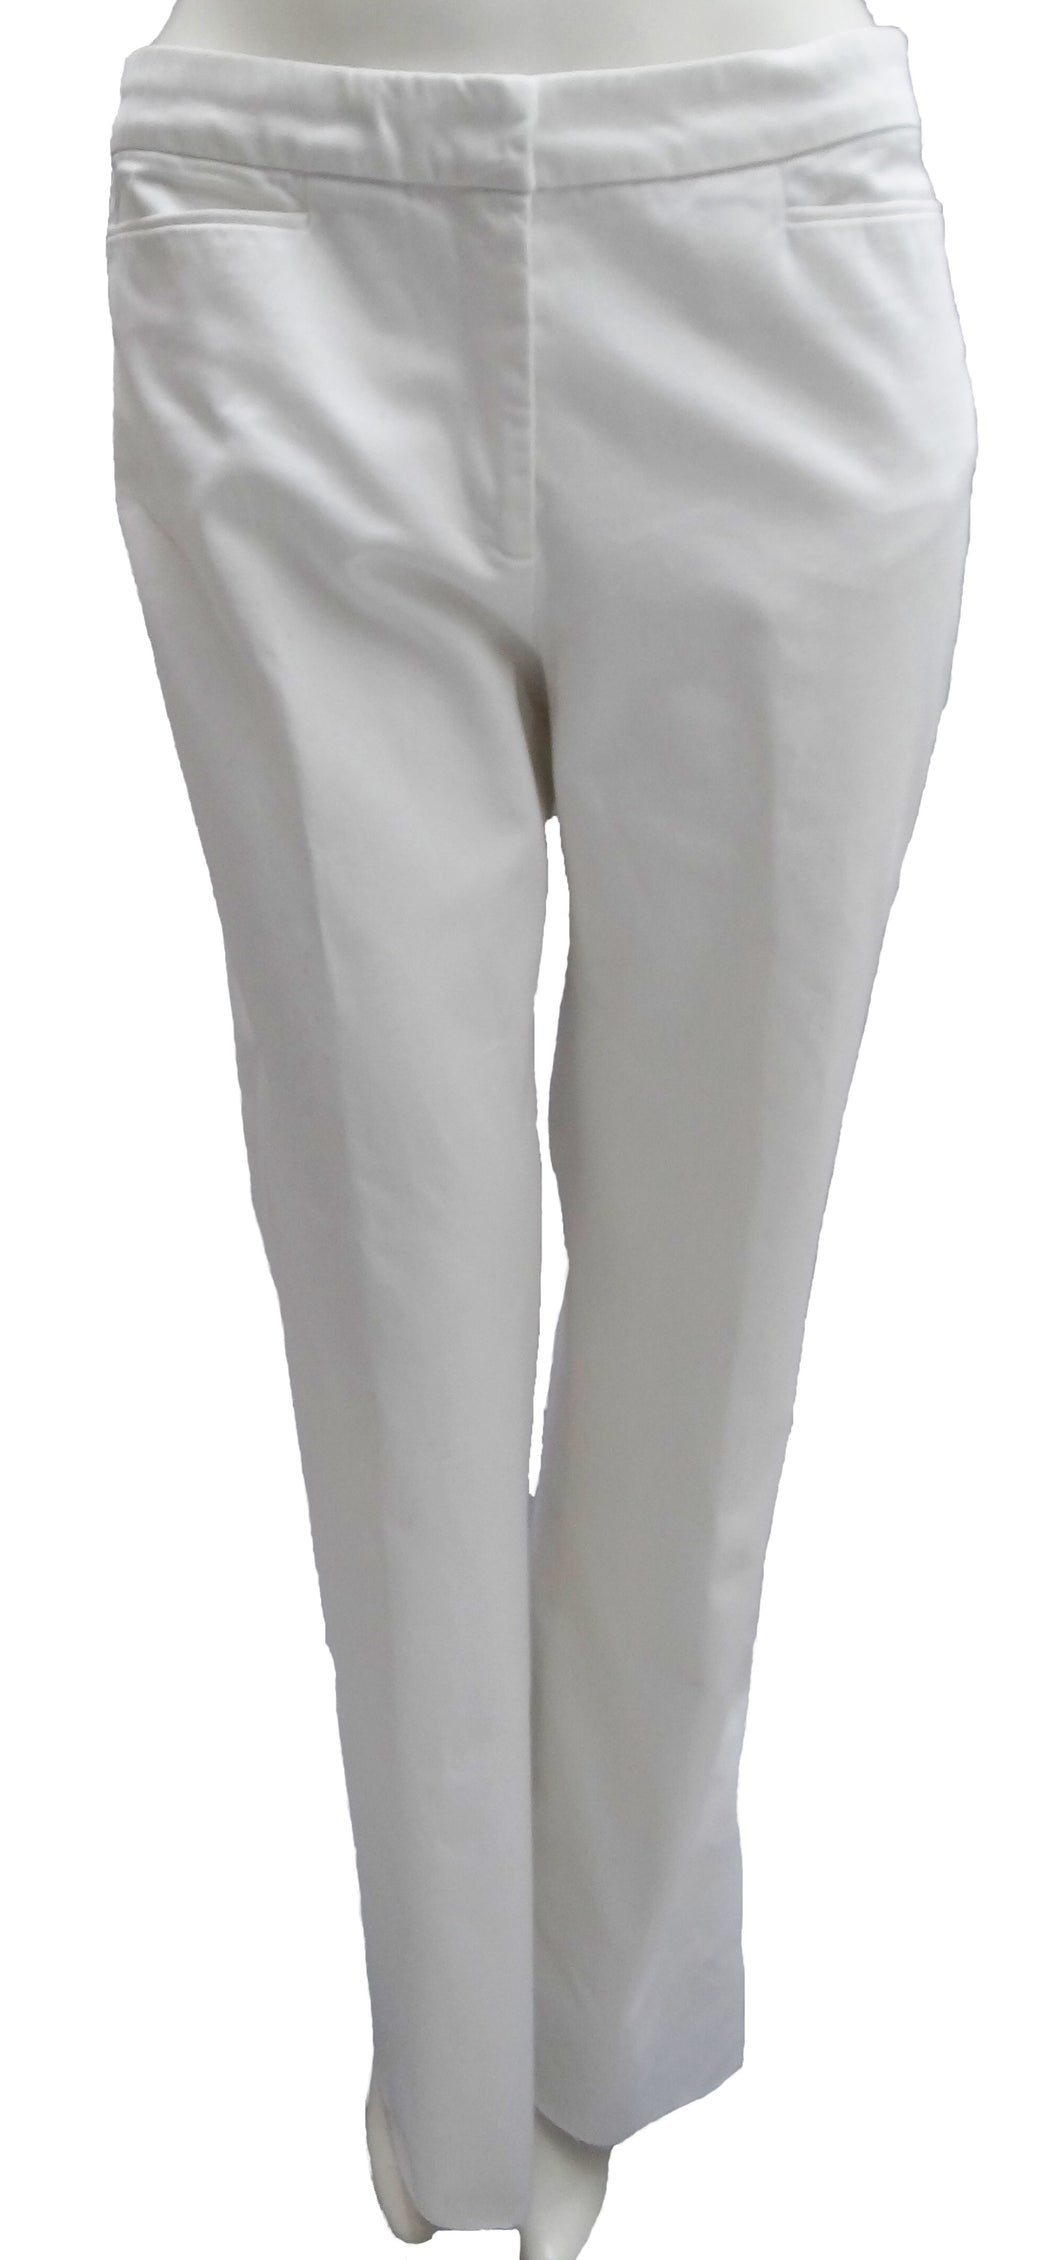 Michael Kors White Summer Flares UK12